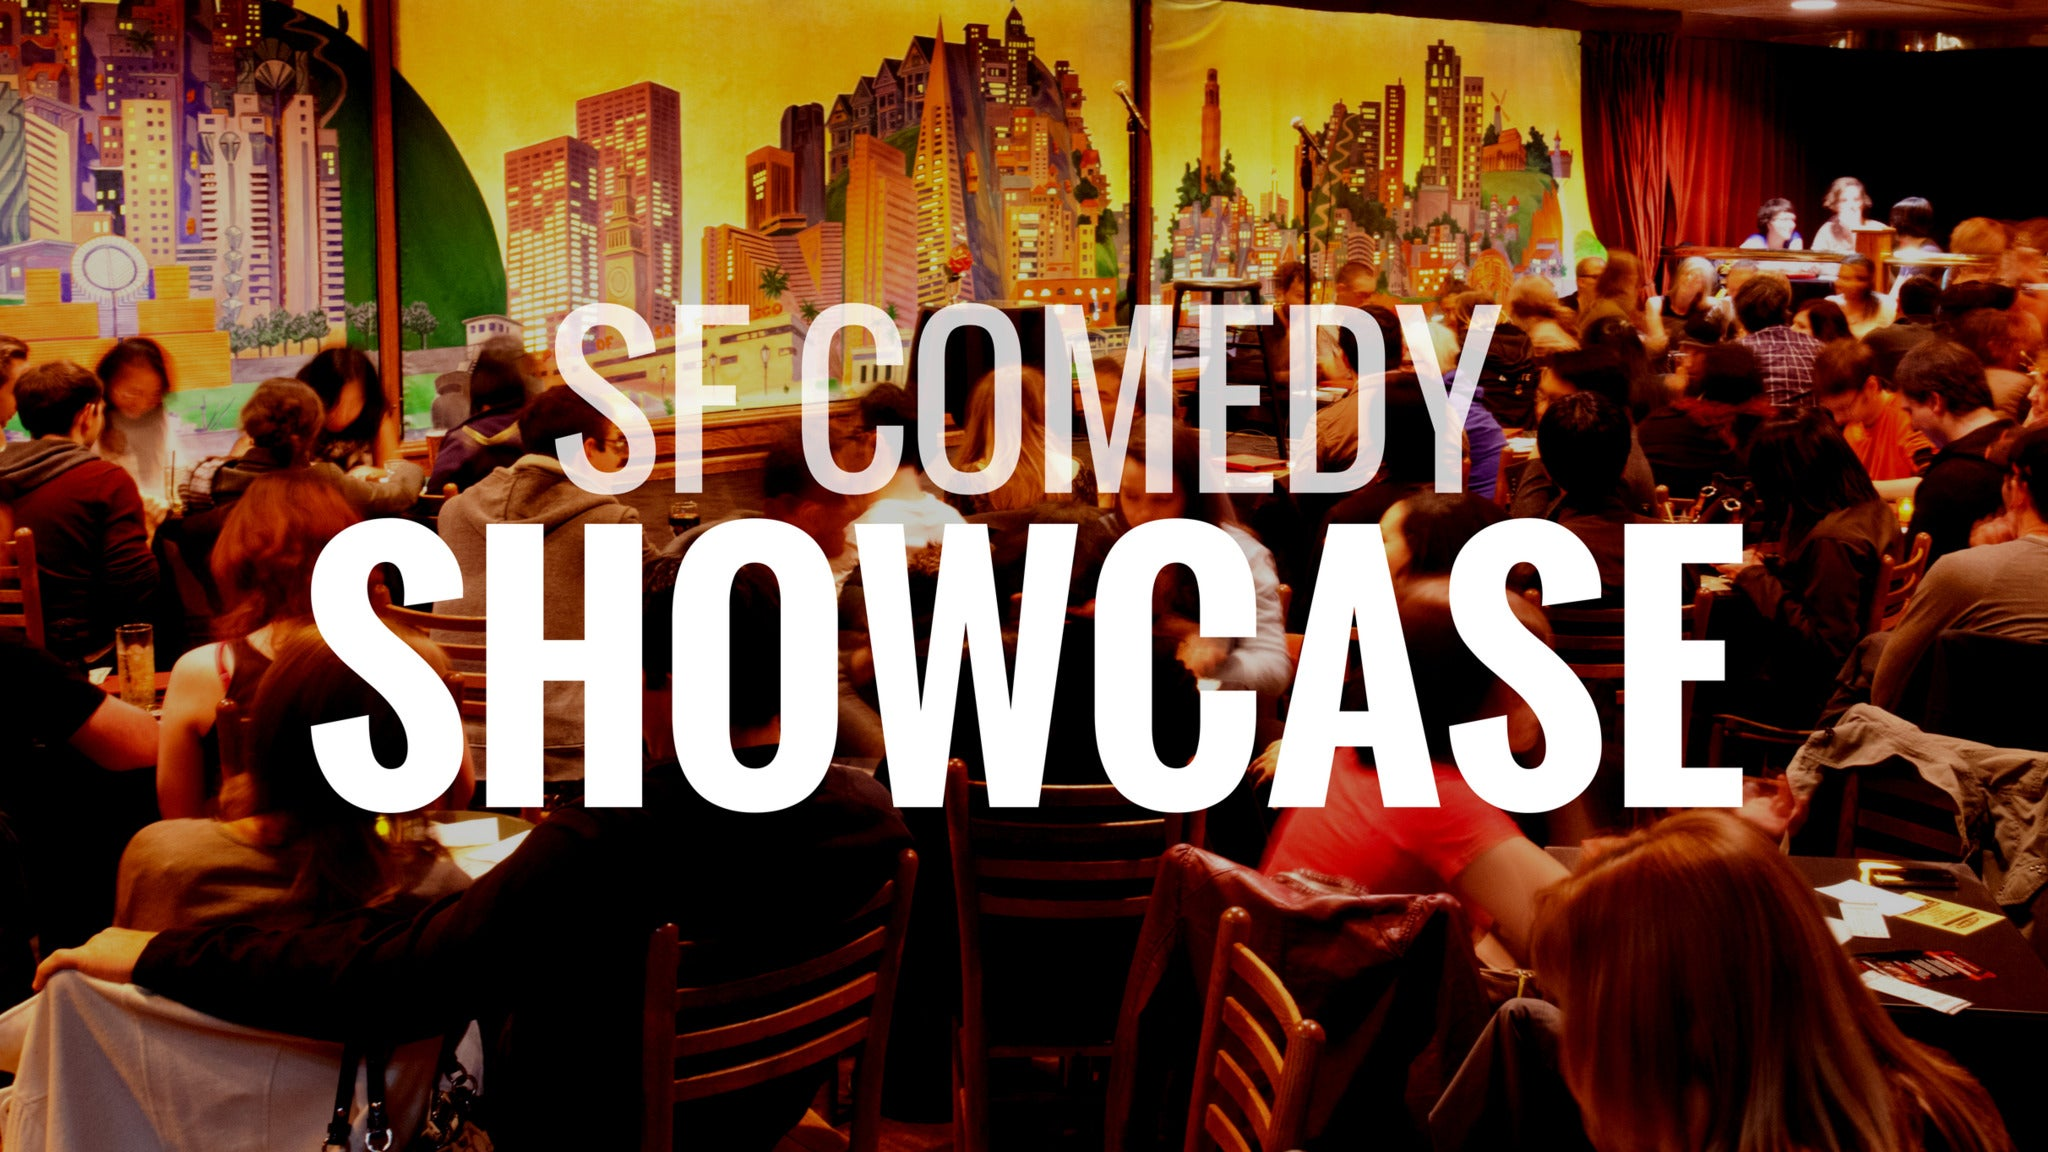 SF Comedy Showcase at Punch Line Comedy Club - San Francisco